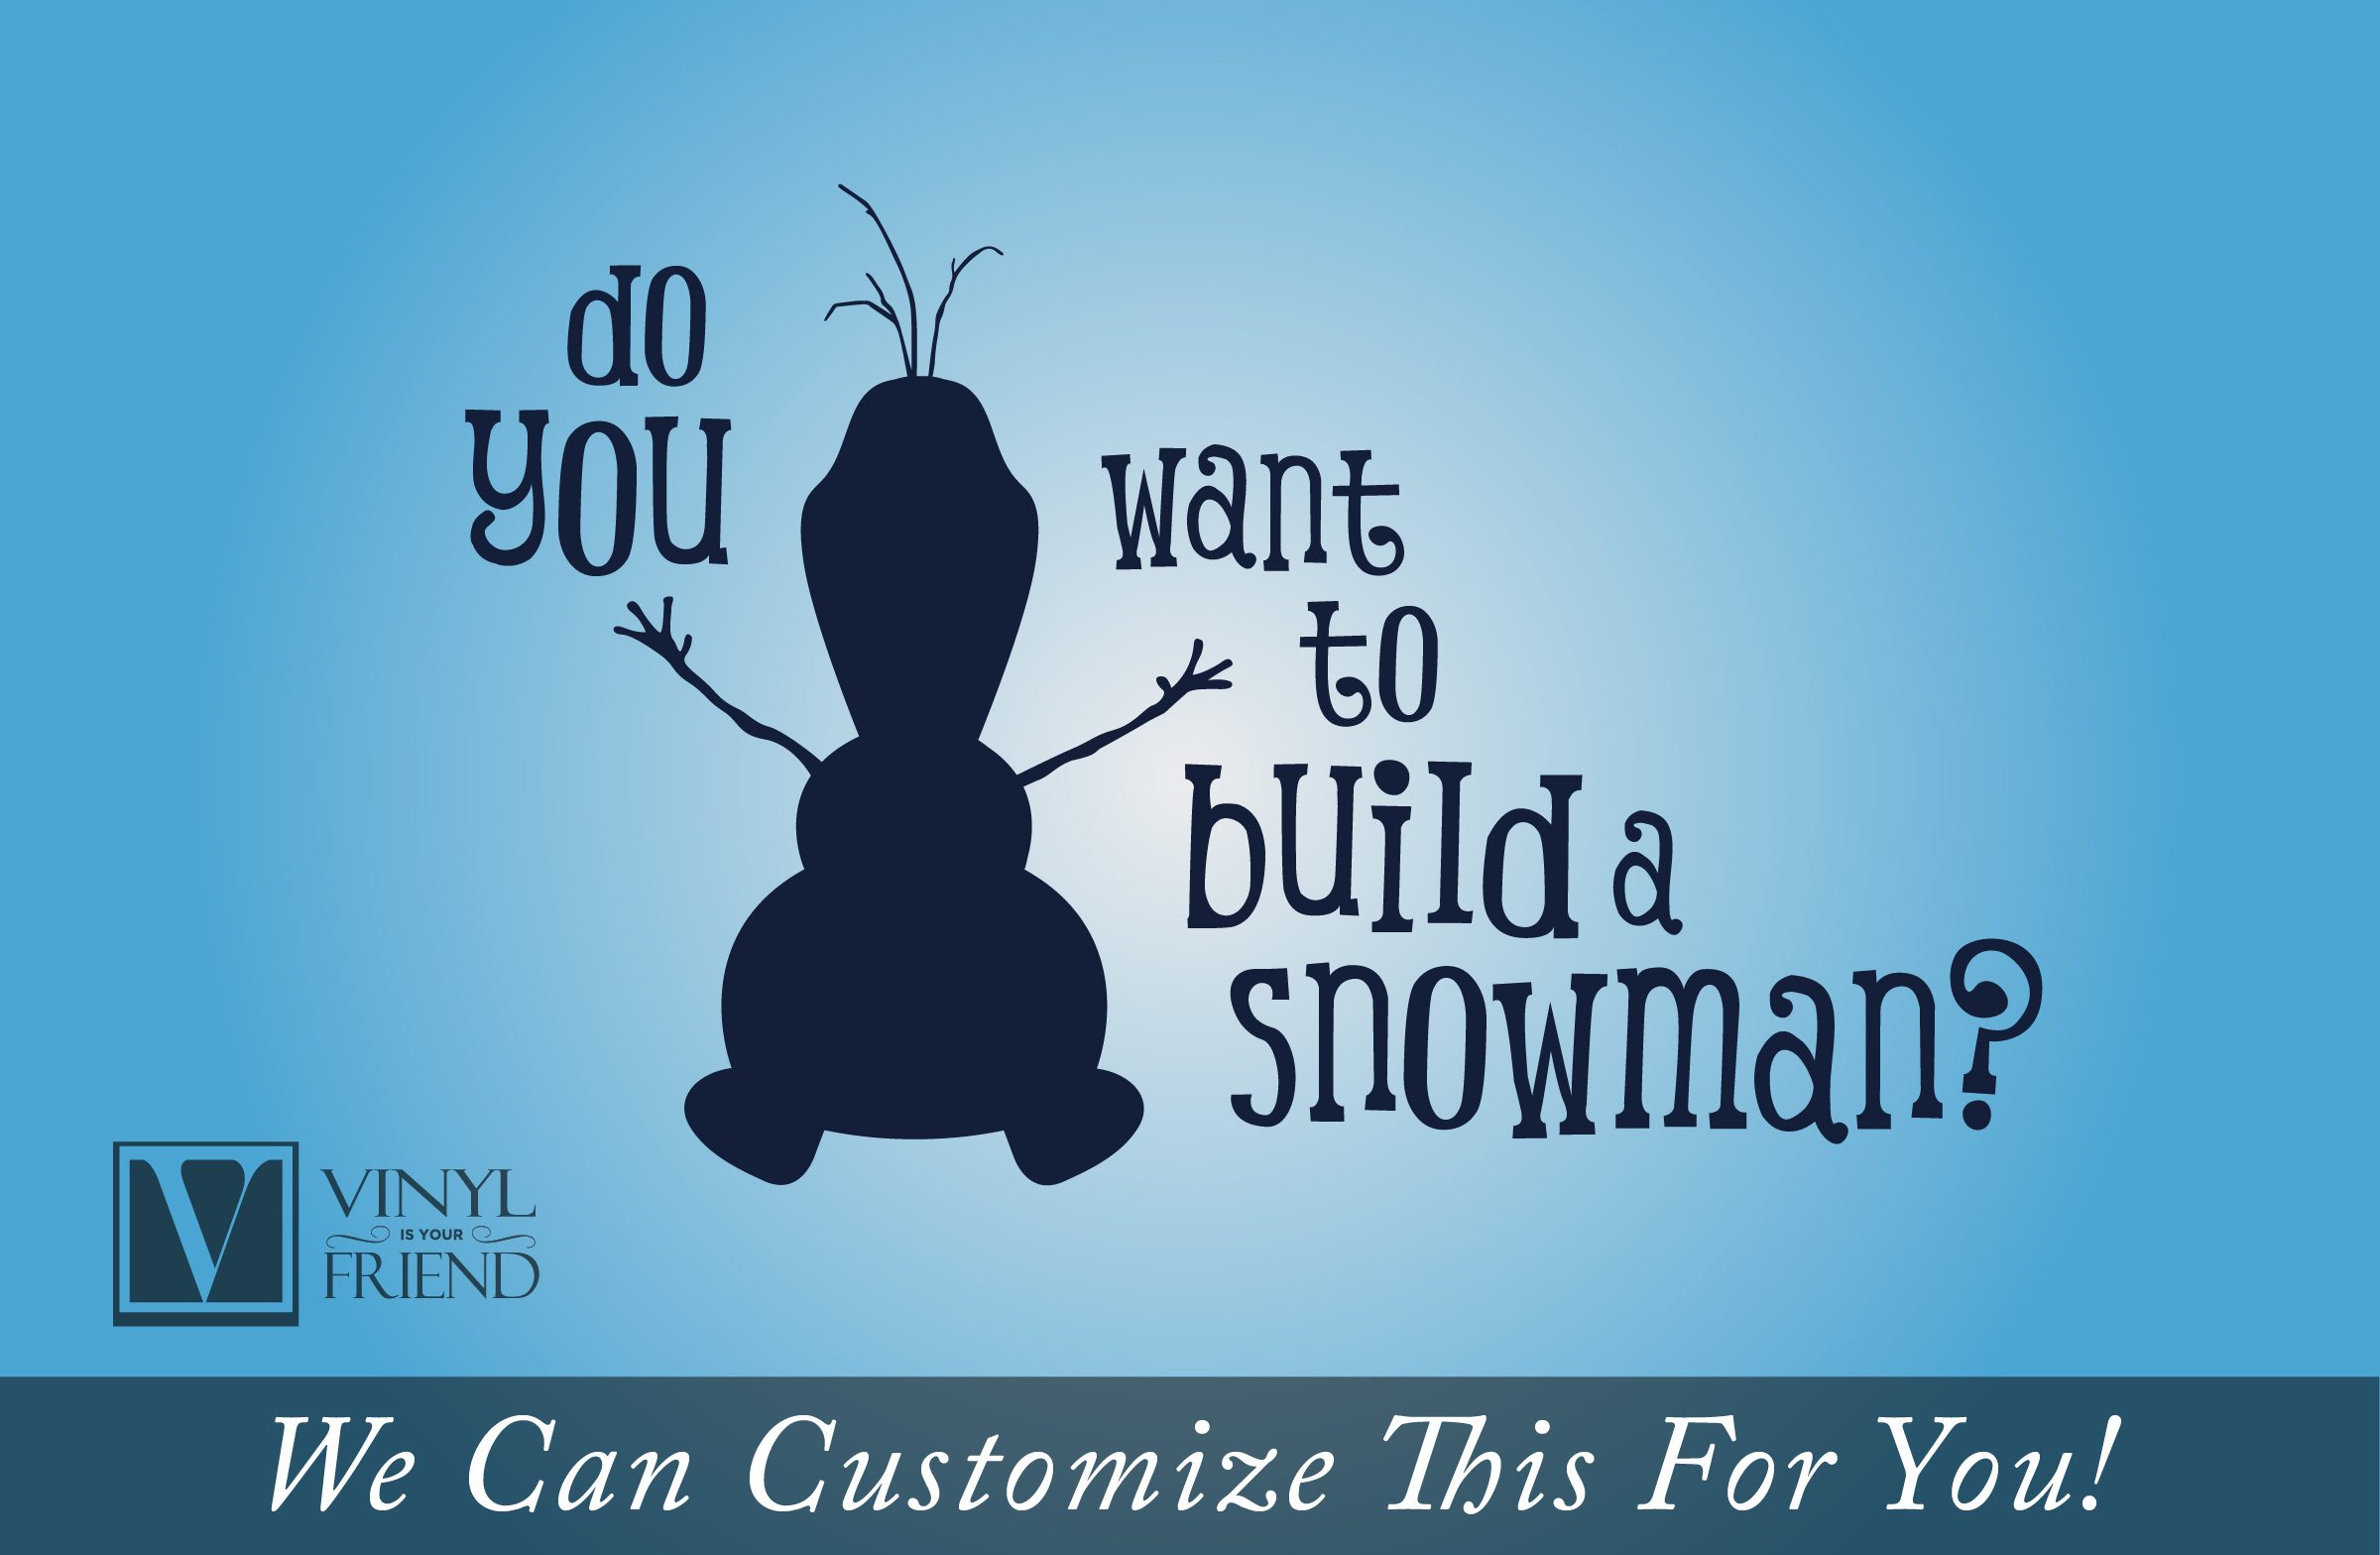 Do you want to build a snowman olaf quote from frozen with his